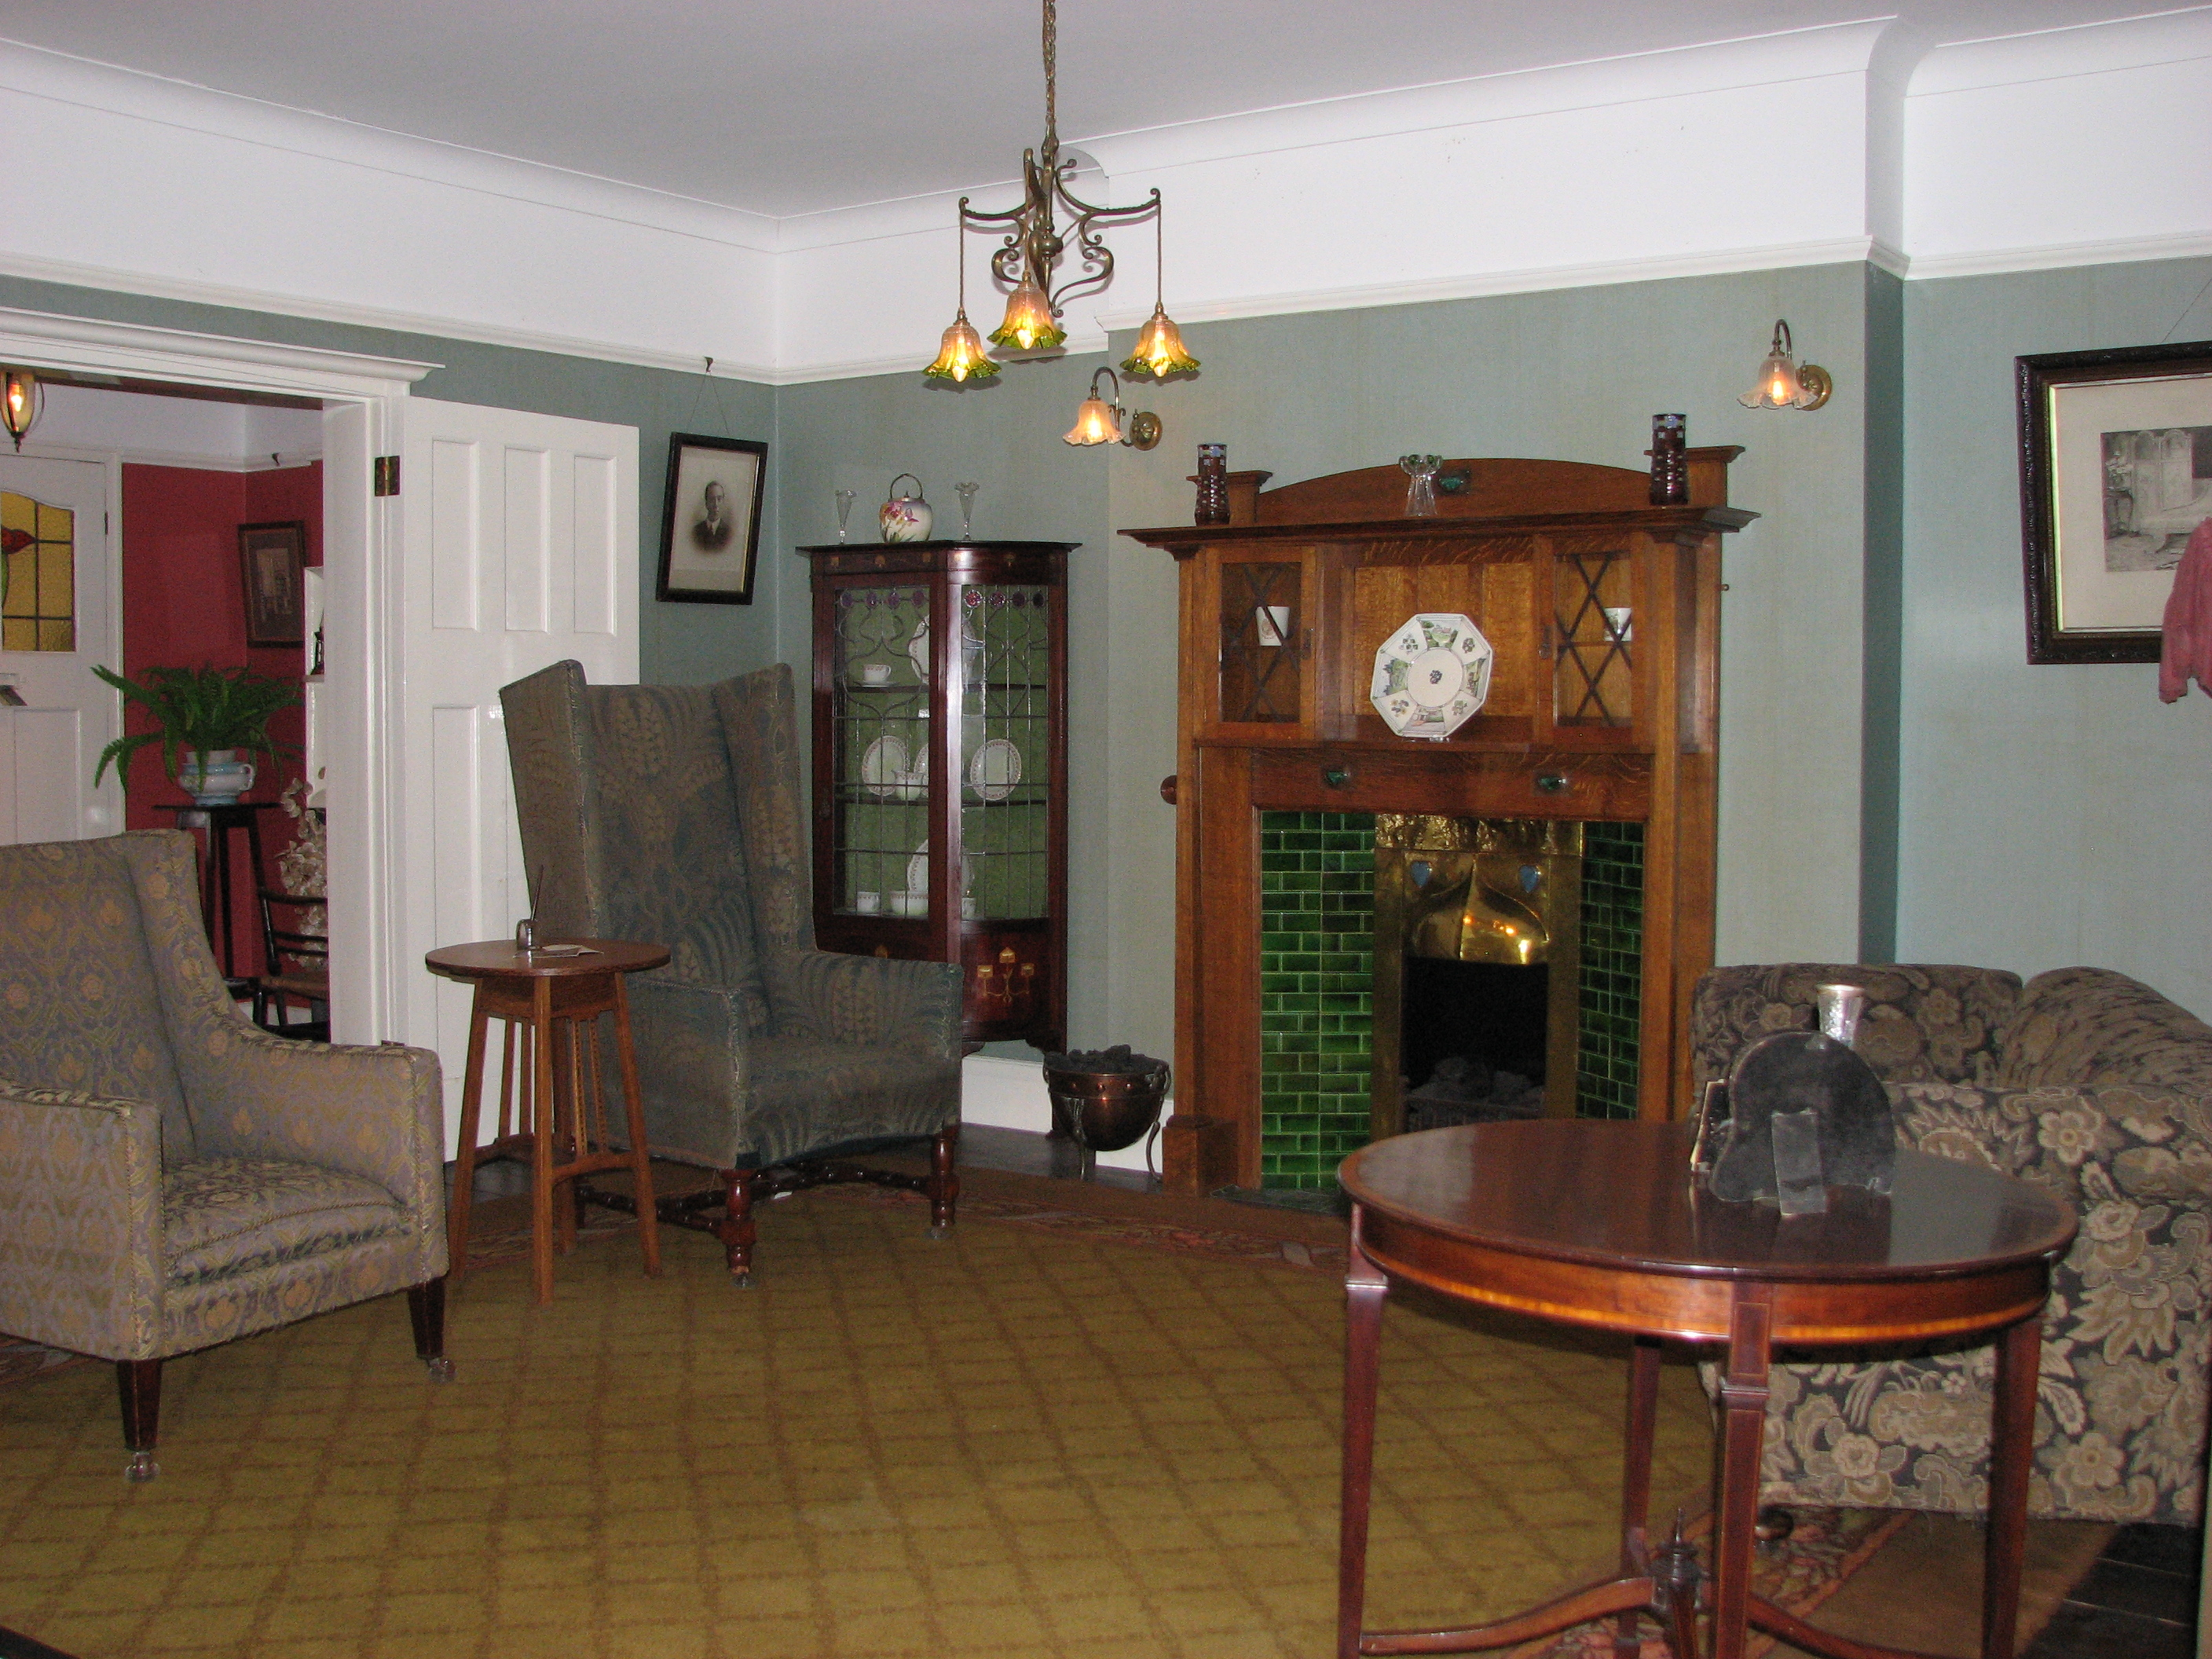 File:Living room - 1910 (2880189050).jpg - Wikimedia Commons